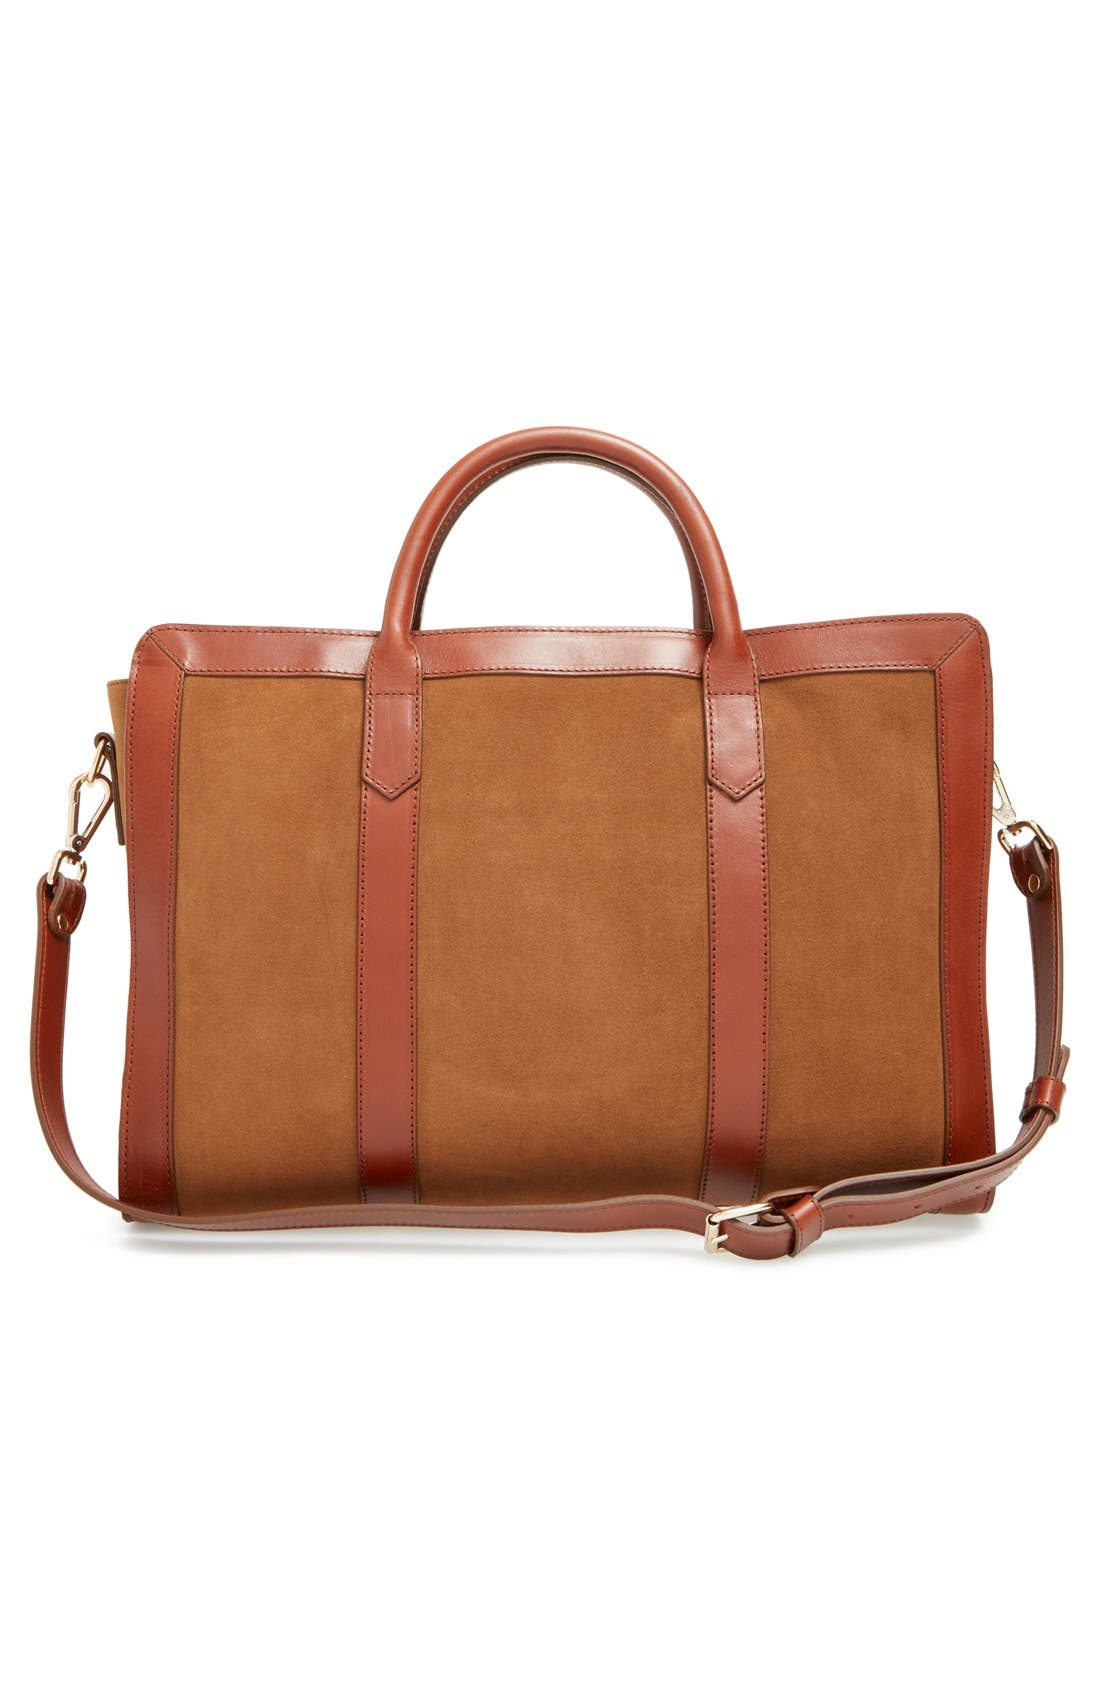 Alternate Image 3  - A.P.C. 'Lydia' Leather & Suede Satchel